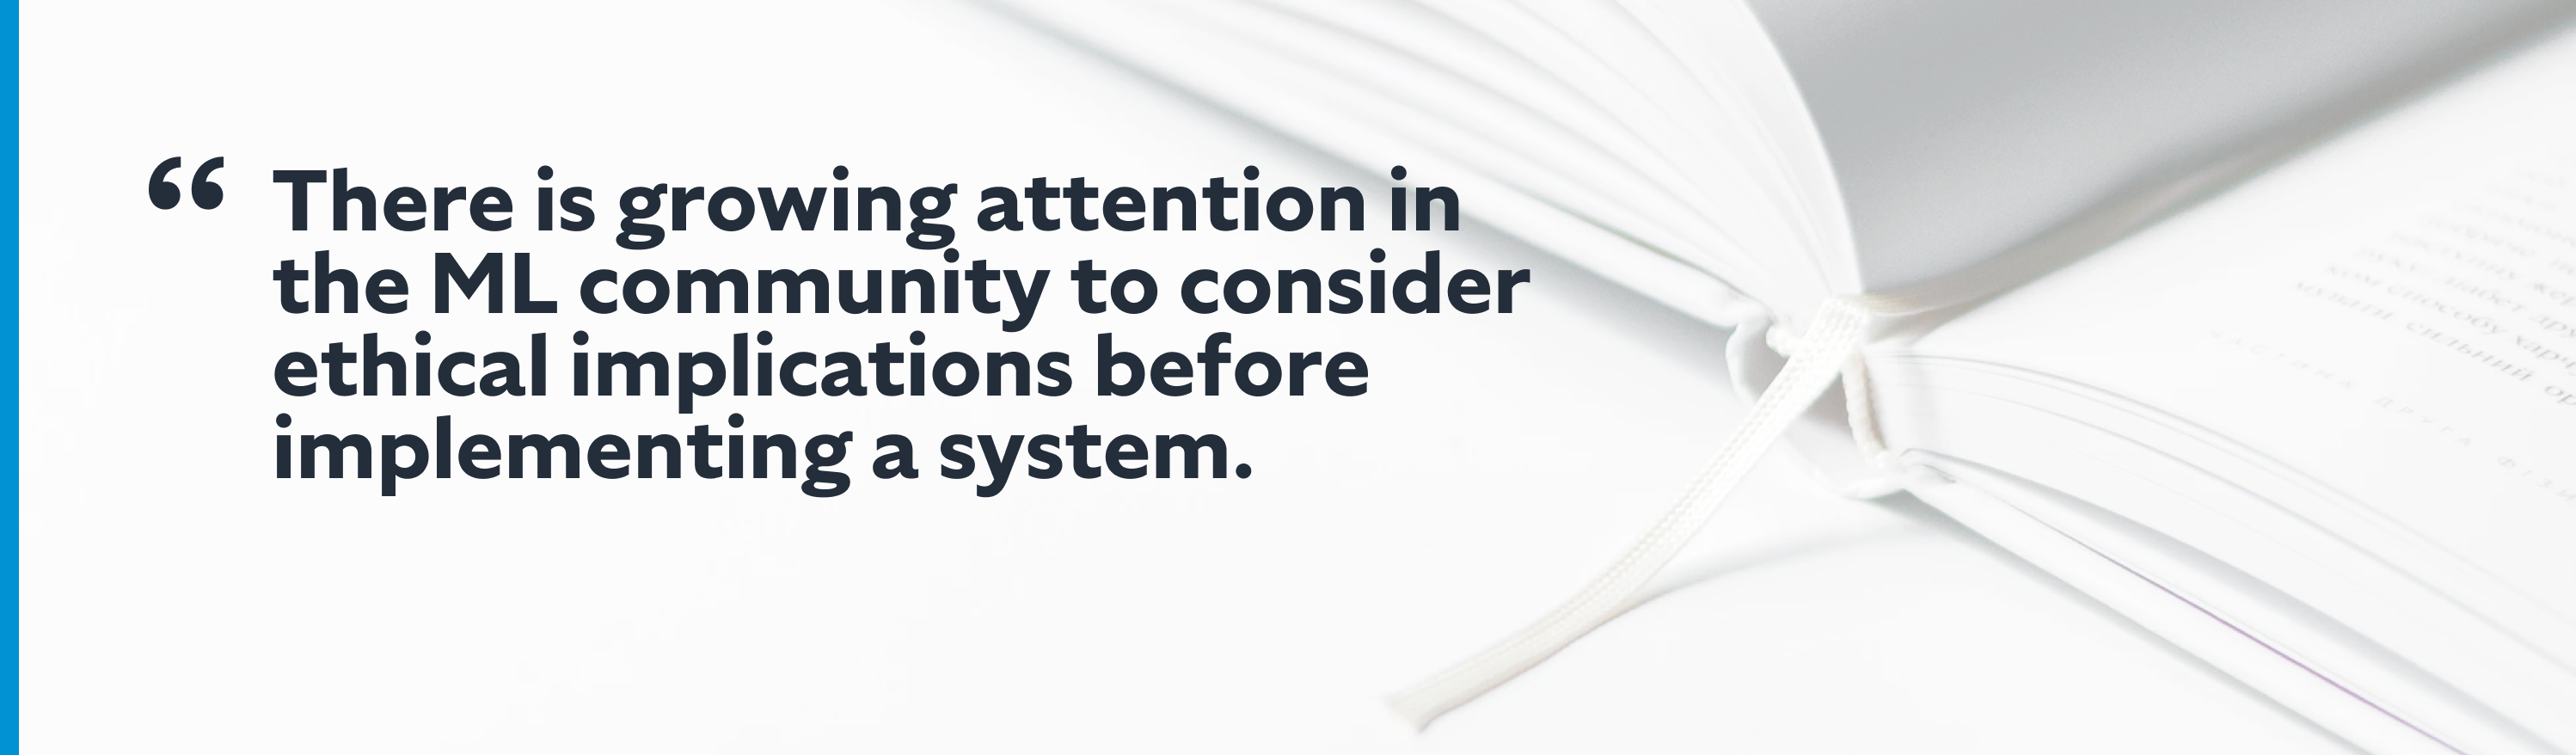 There is growing attention in the ML community to consider ethical implications before implementing a system.